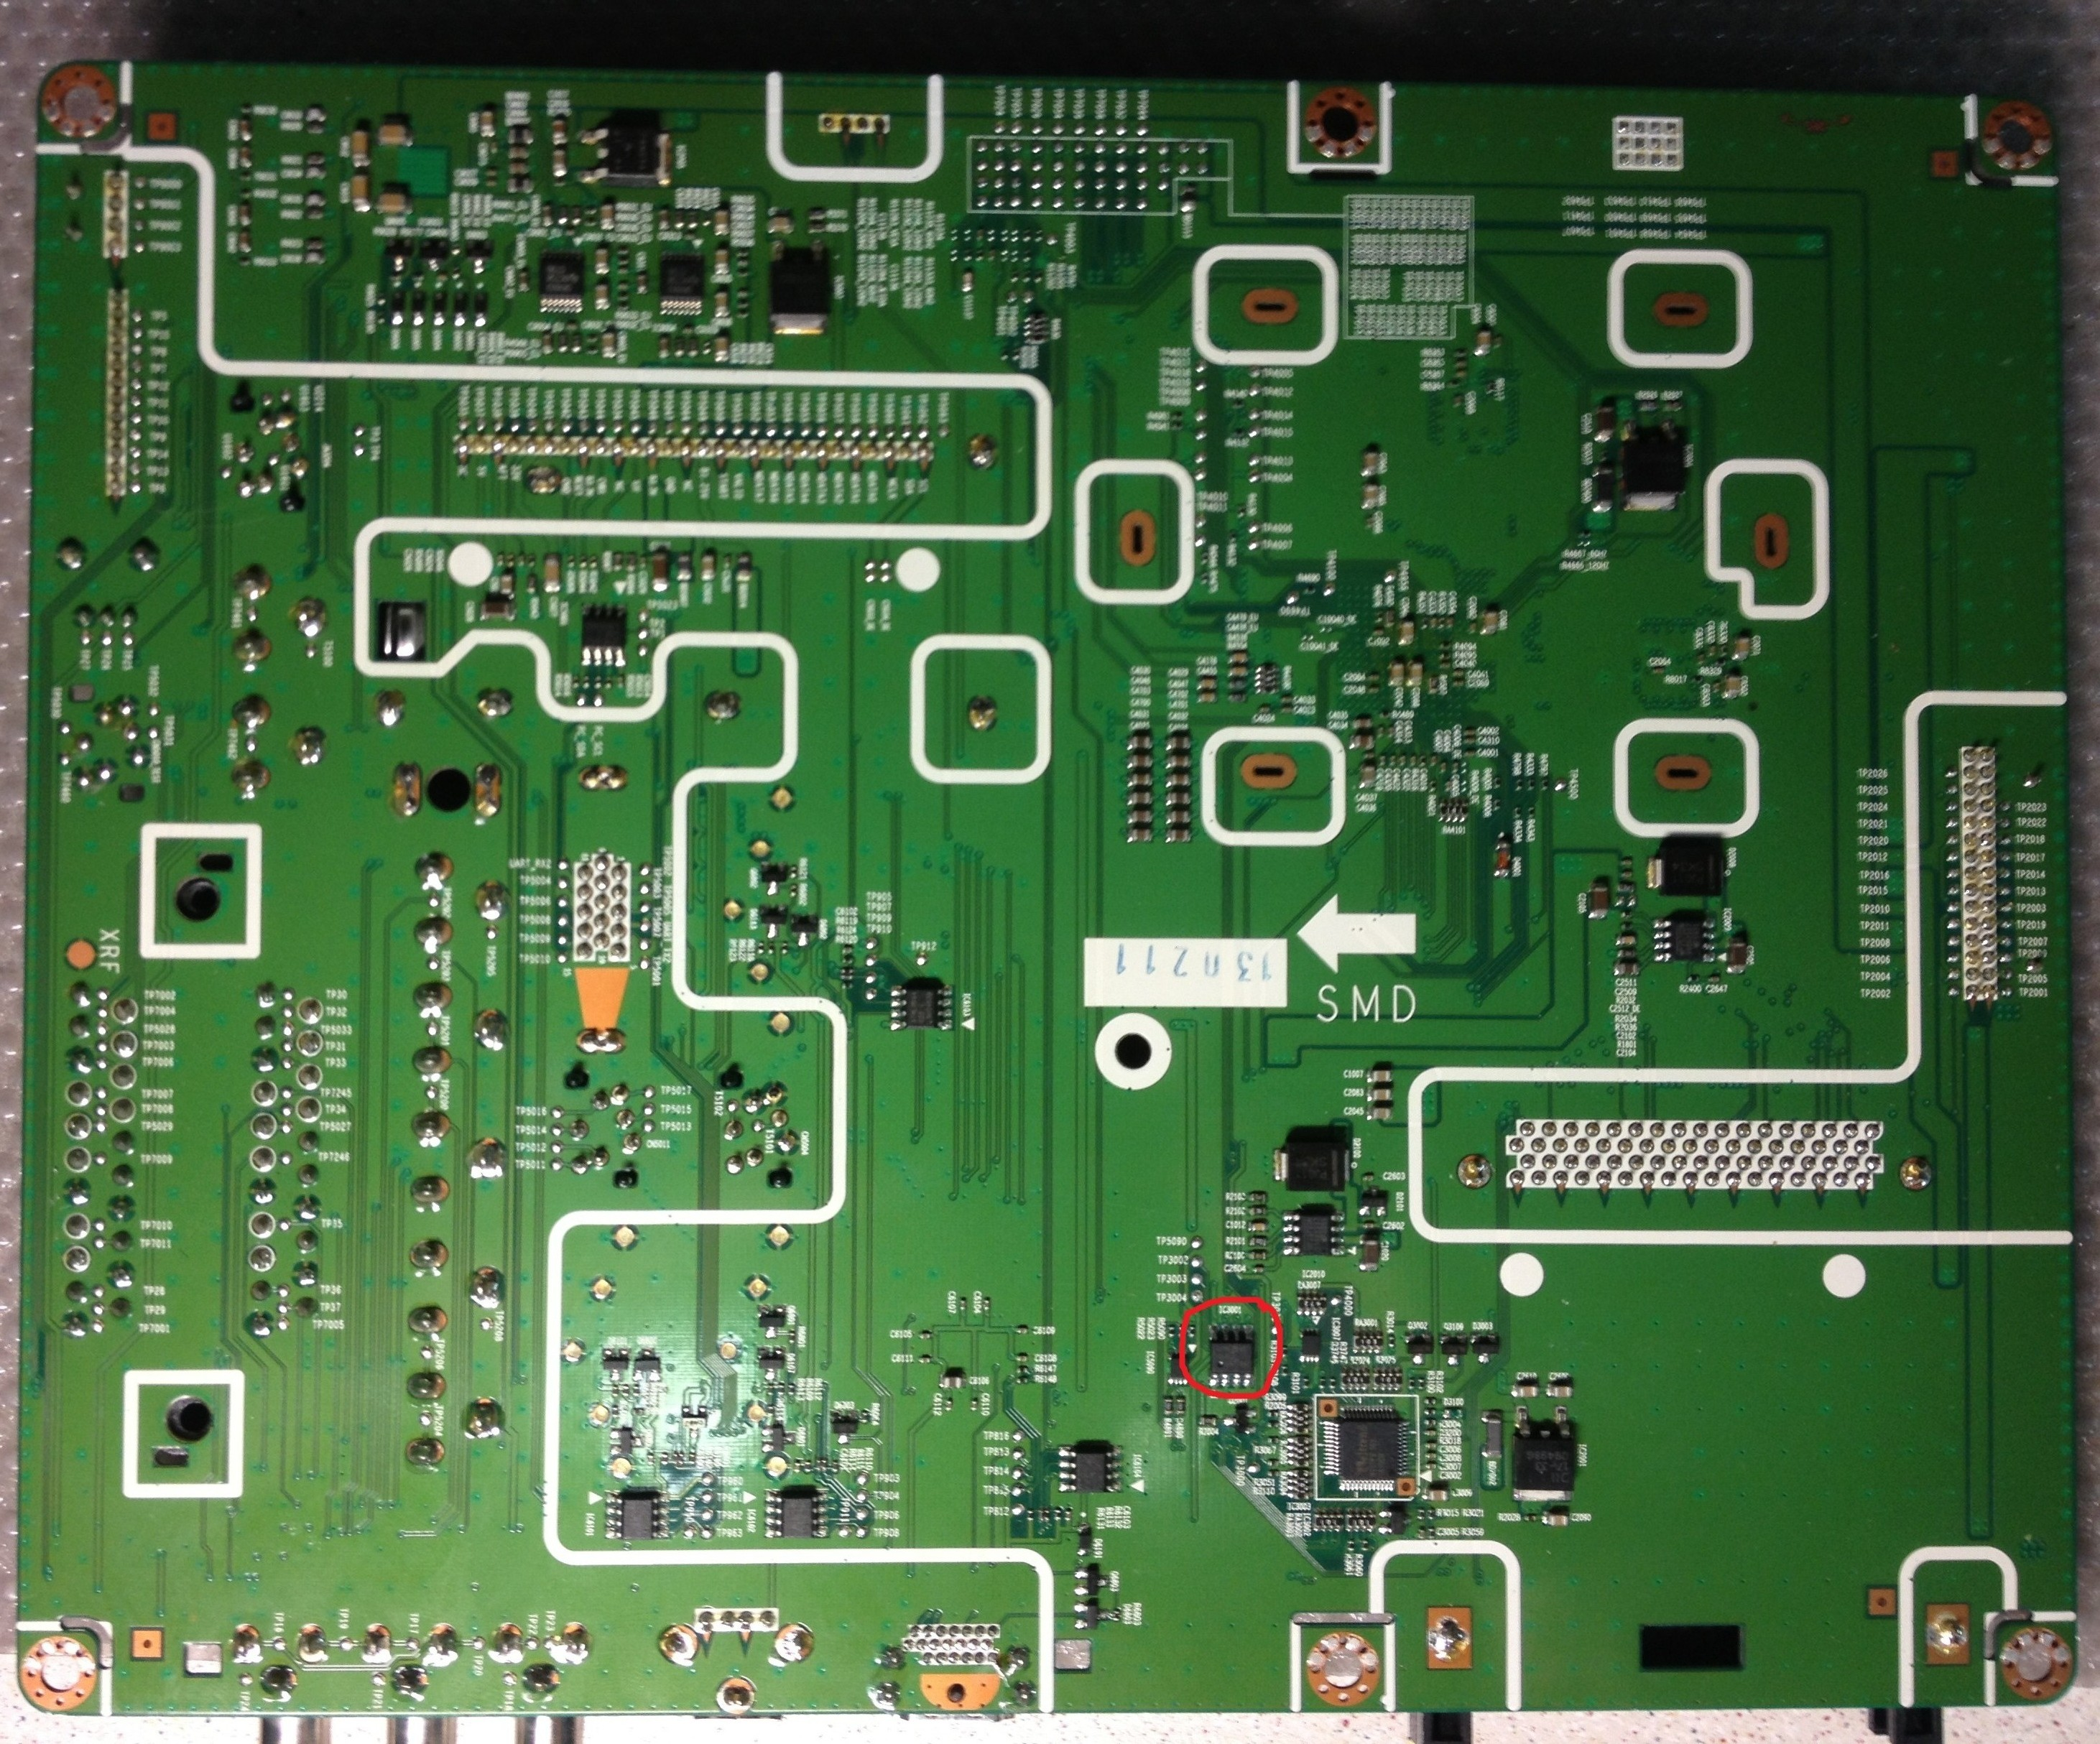 B550 mainboarboard back side